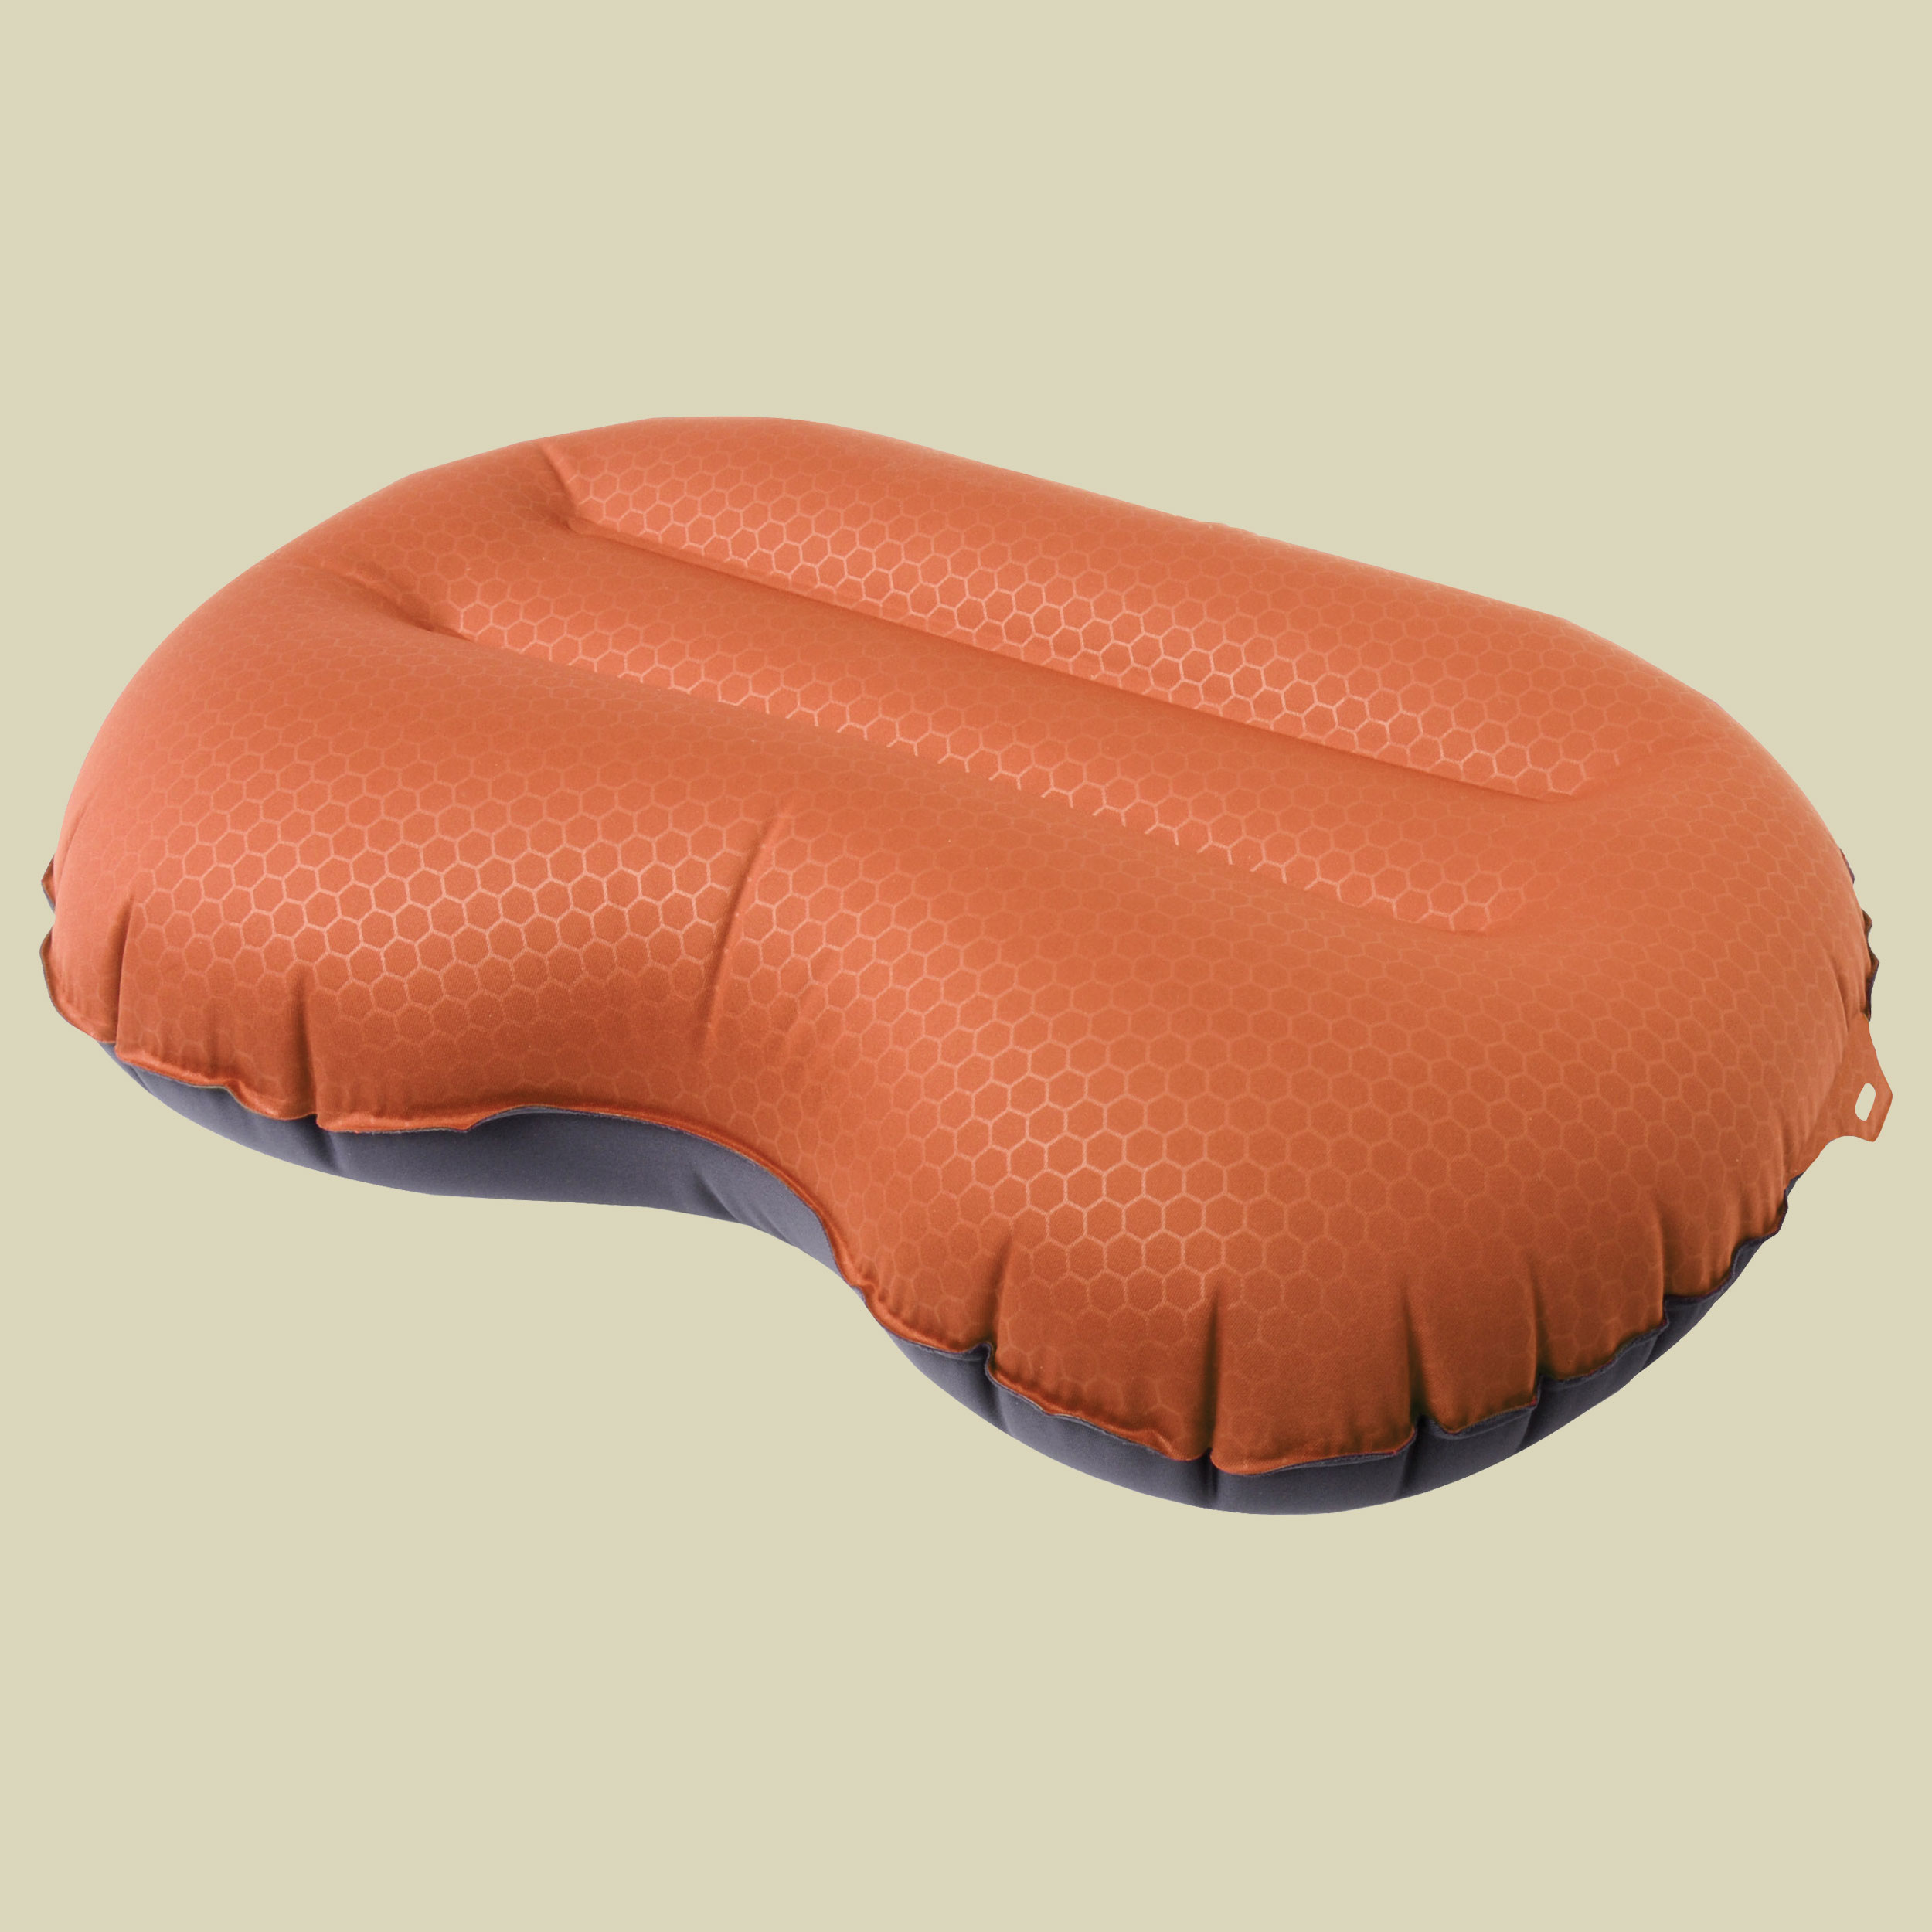 Exped Air Pillow Lite L Kopfkissen Maße: 46 x 30 x 12 cm Farbe: orange